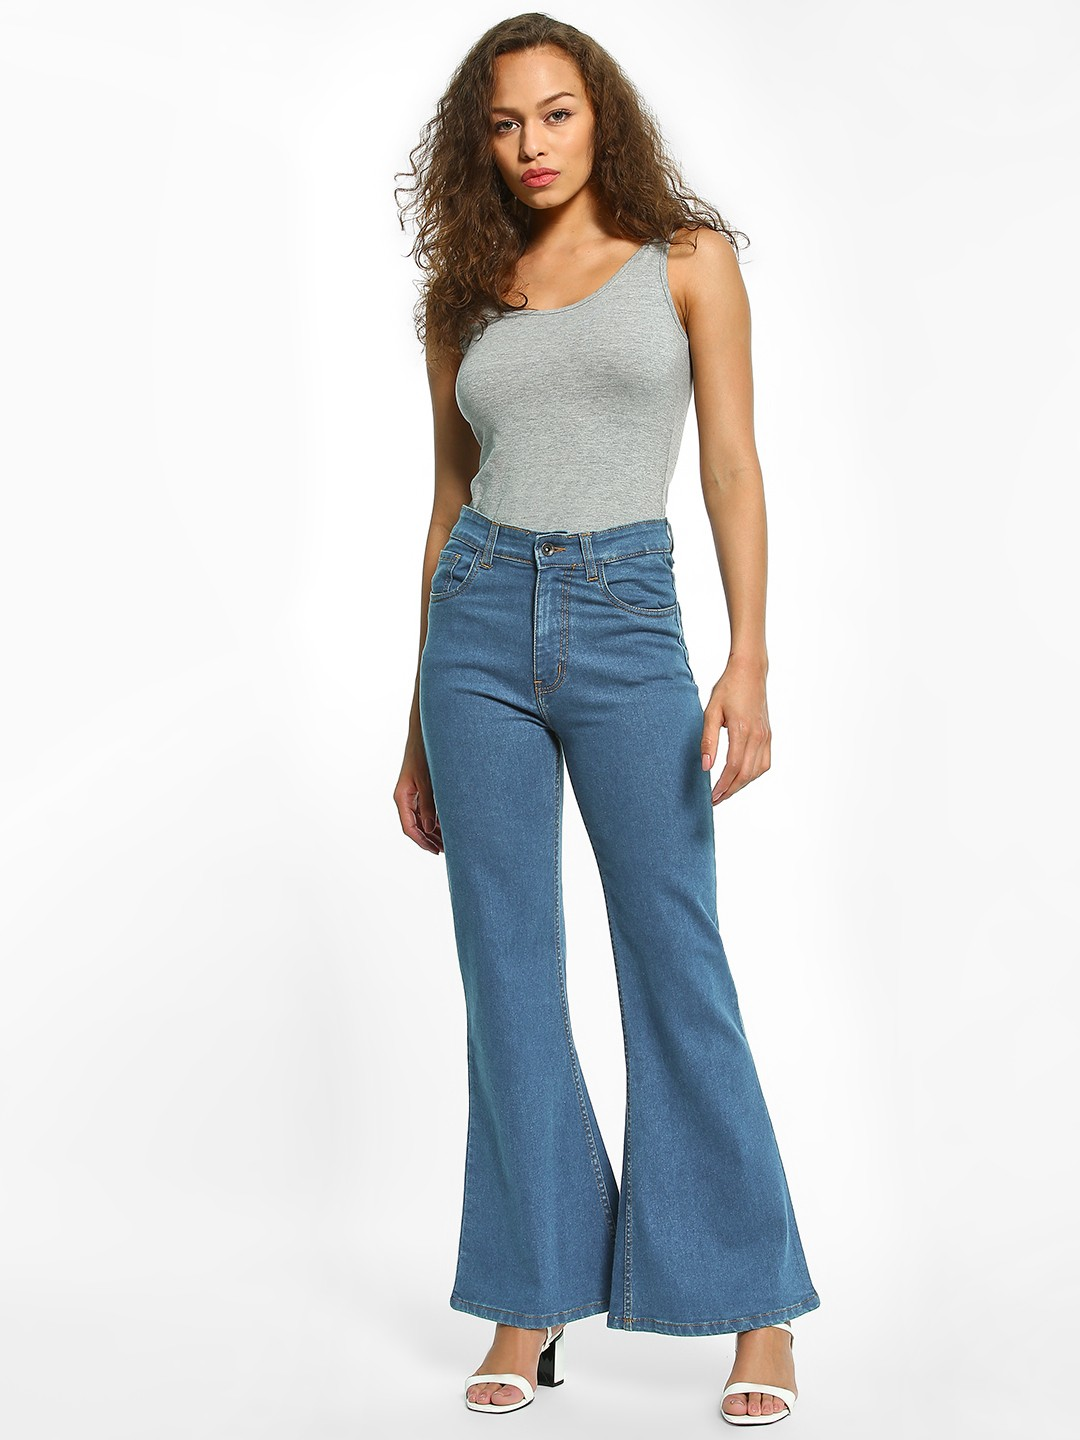 K Denim Blue KOOVS High Waist Flared Jeans 1